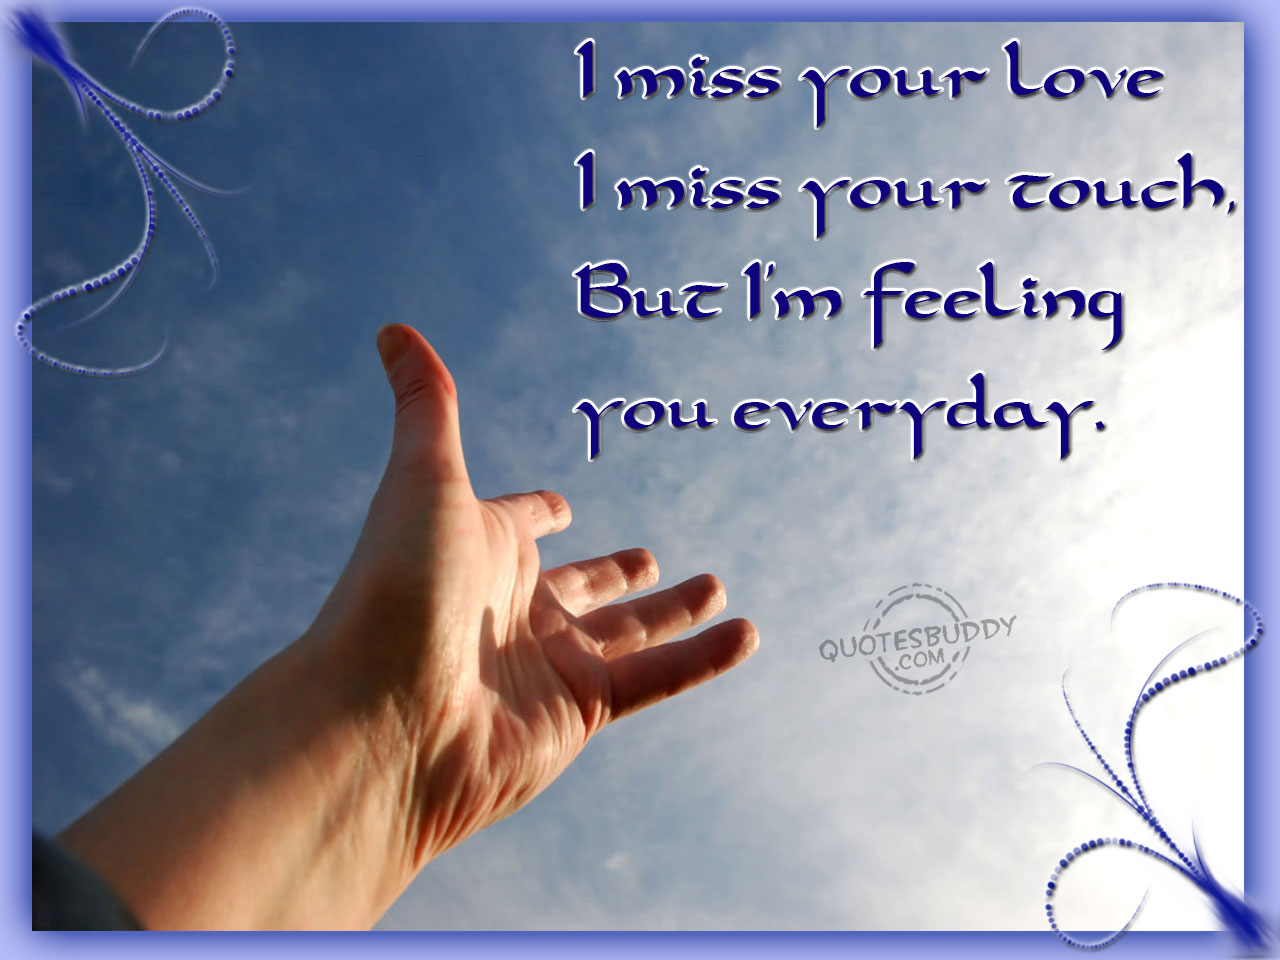 Funny Wallpapers: Missing You Quotes, Miss You Quote, Miss